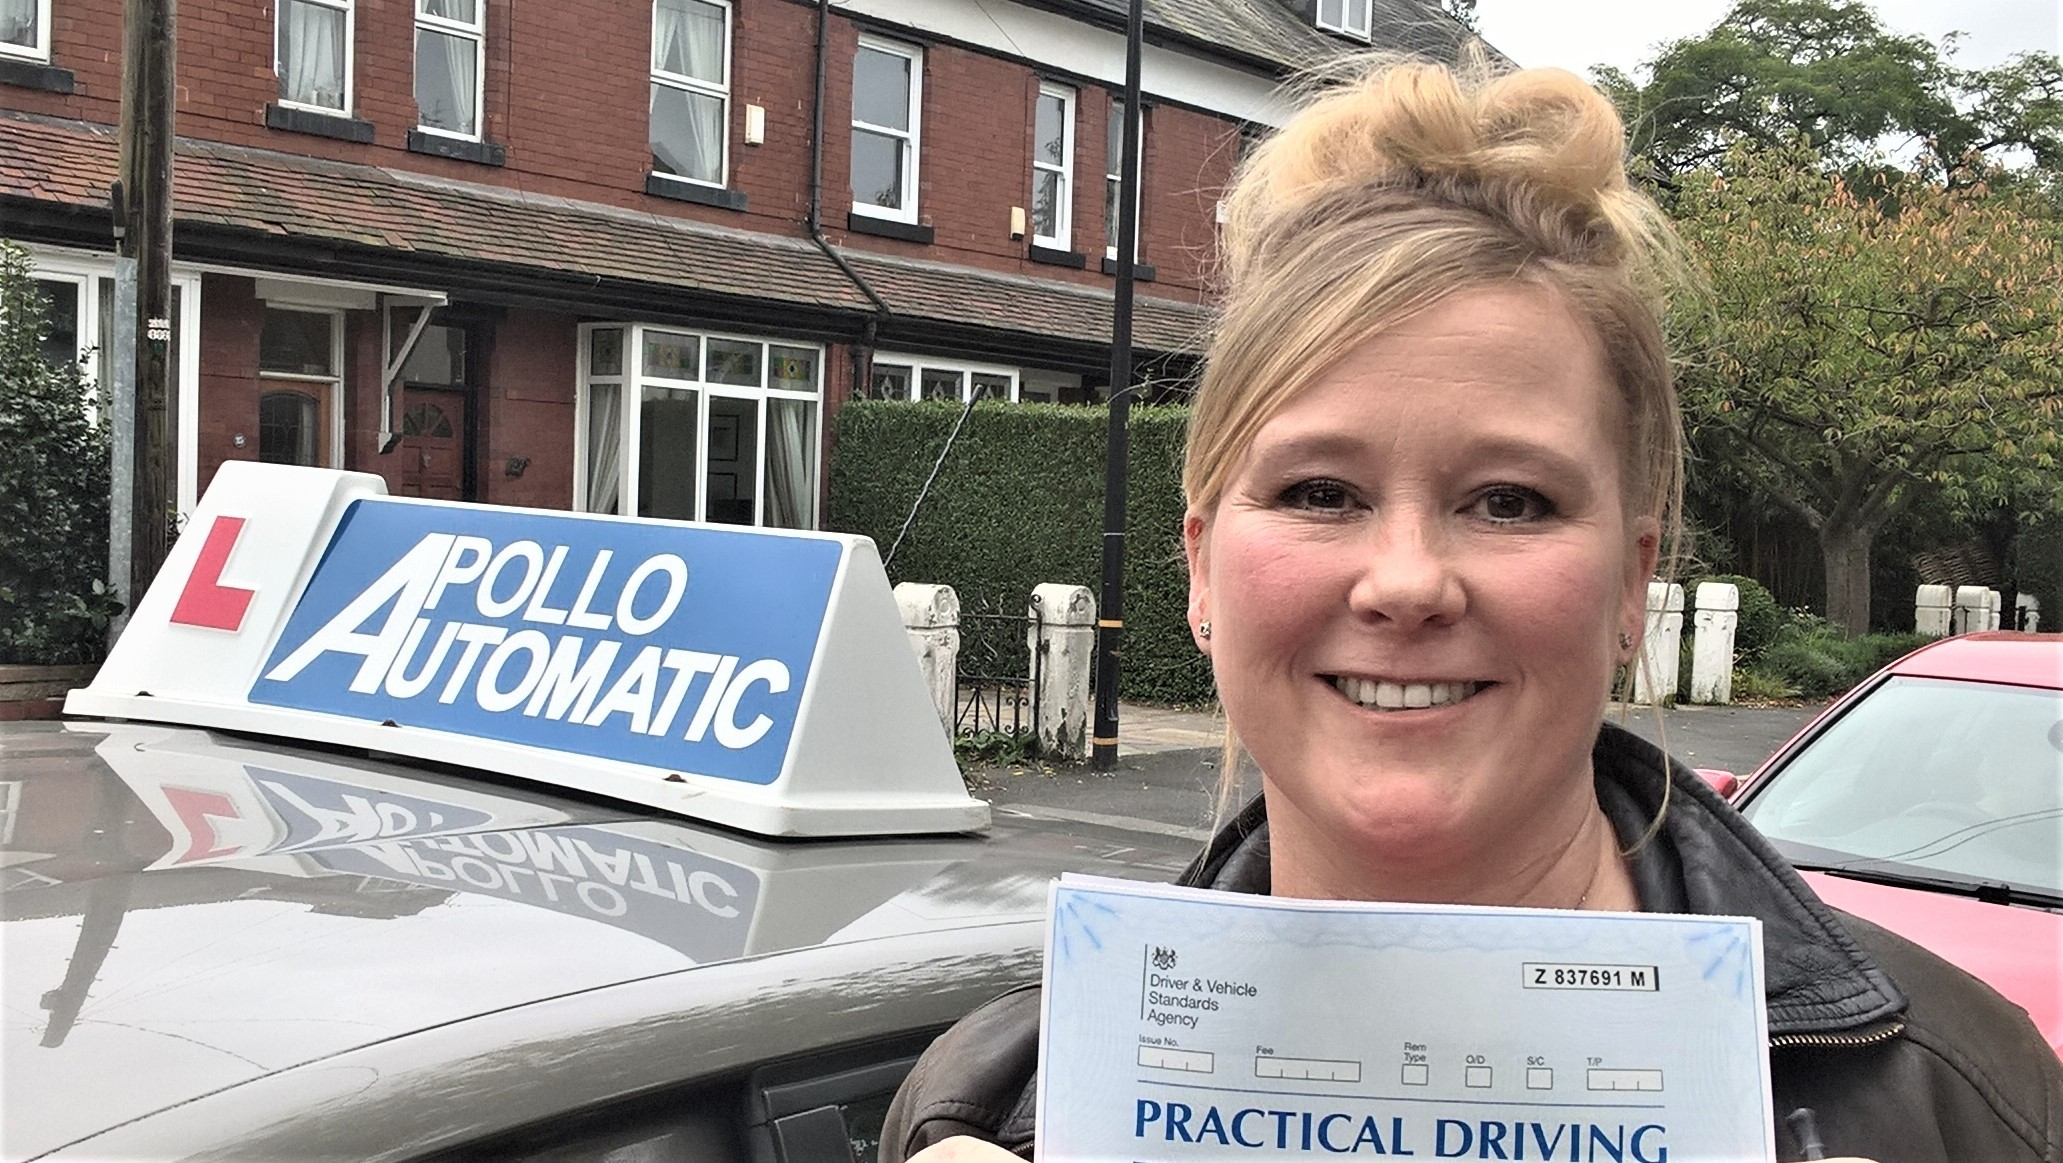 ANGIE_PARSONAGE_Automatic_Driving_Lessons_4_U_Sale_Manchester